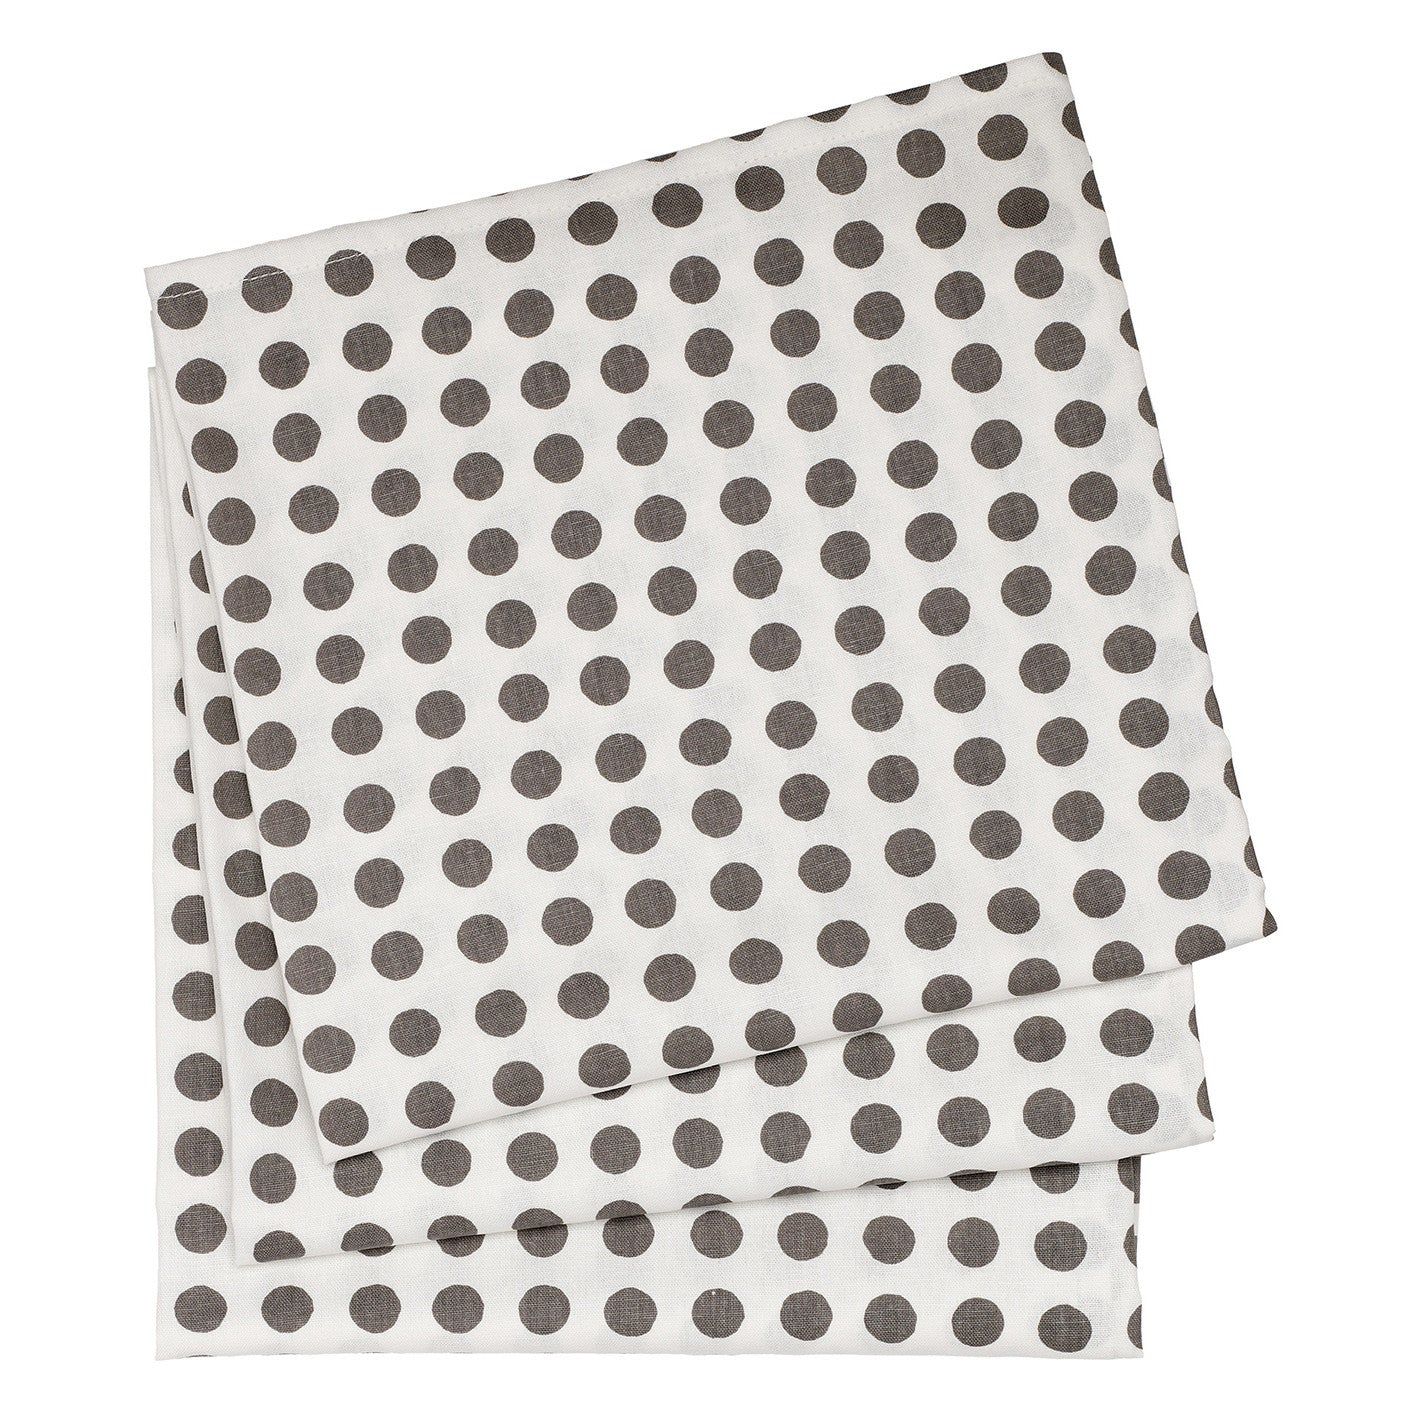 London Polka Dot Linen Cotton Tablecloth in Stone Grey